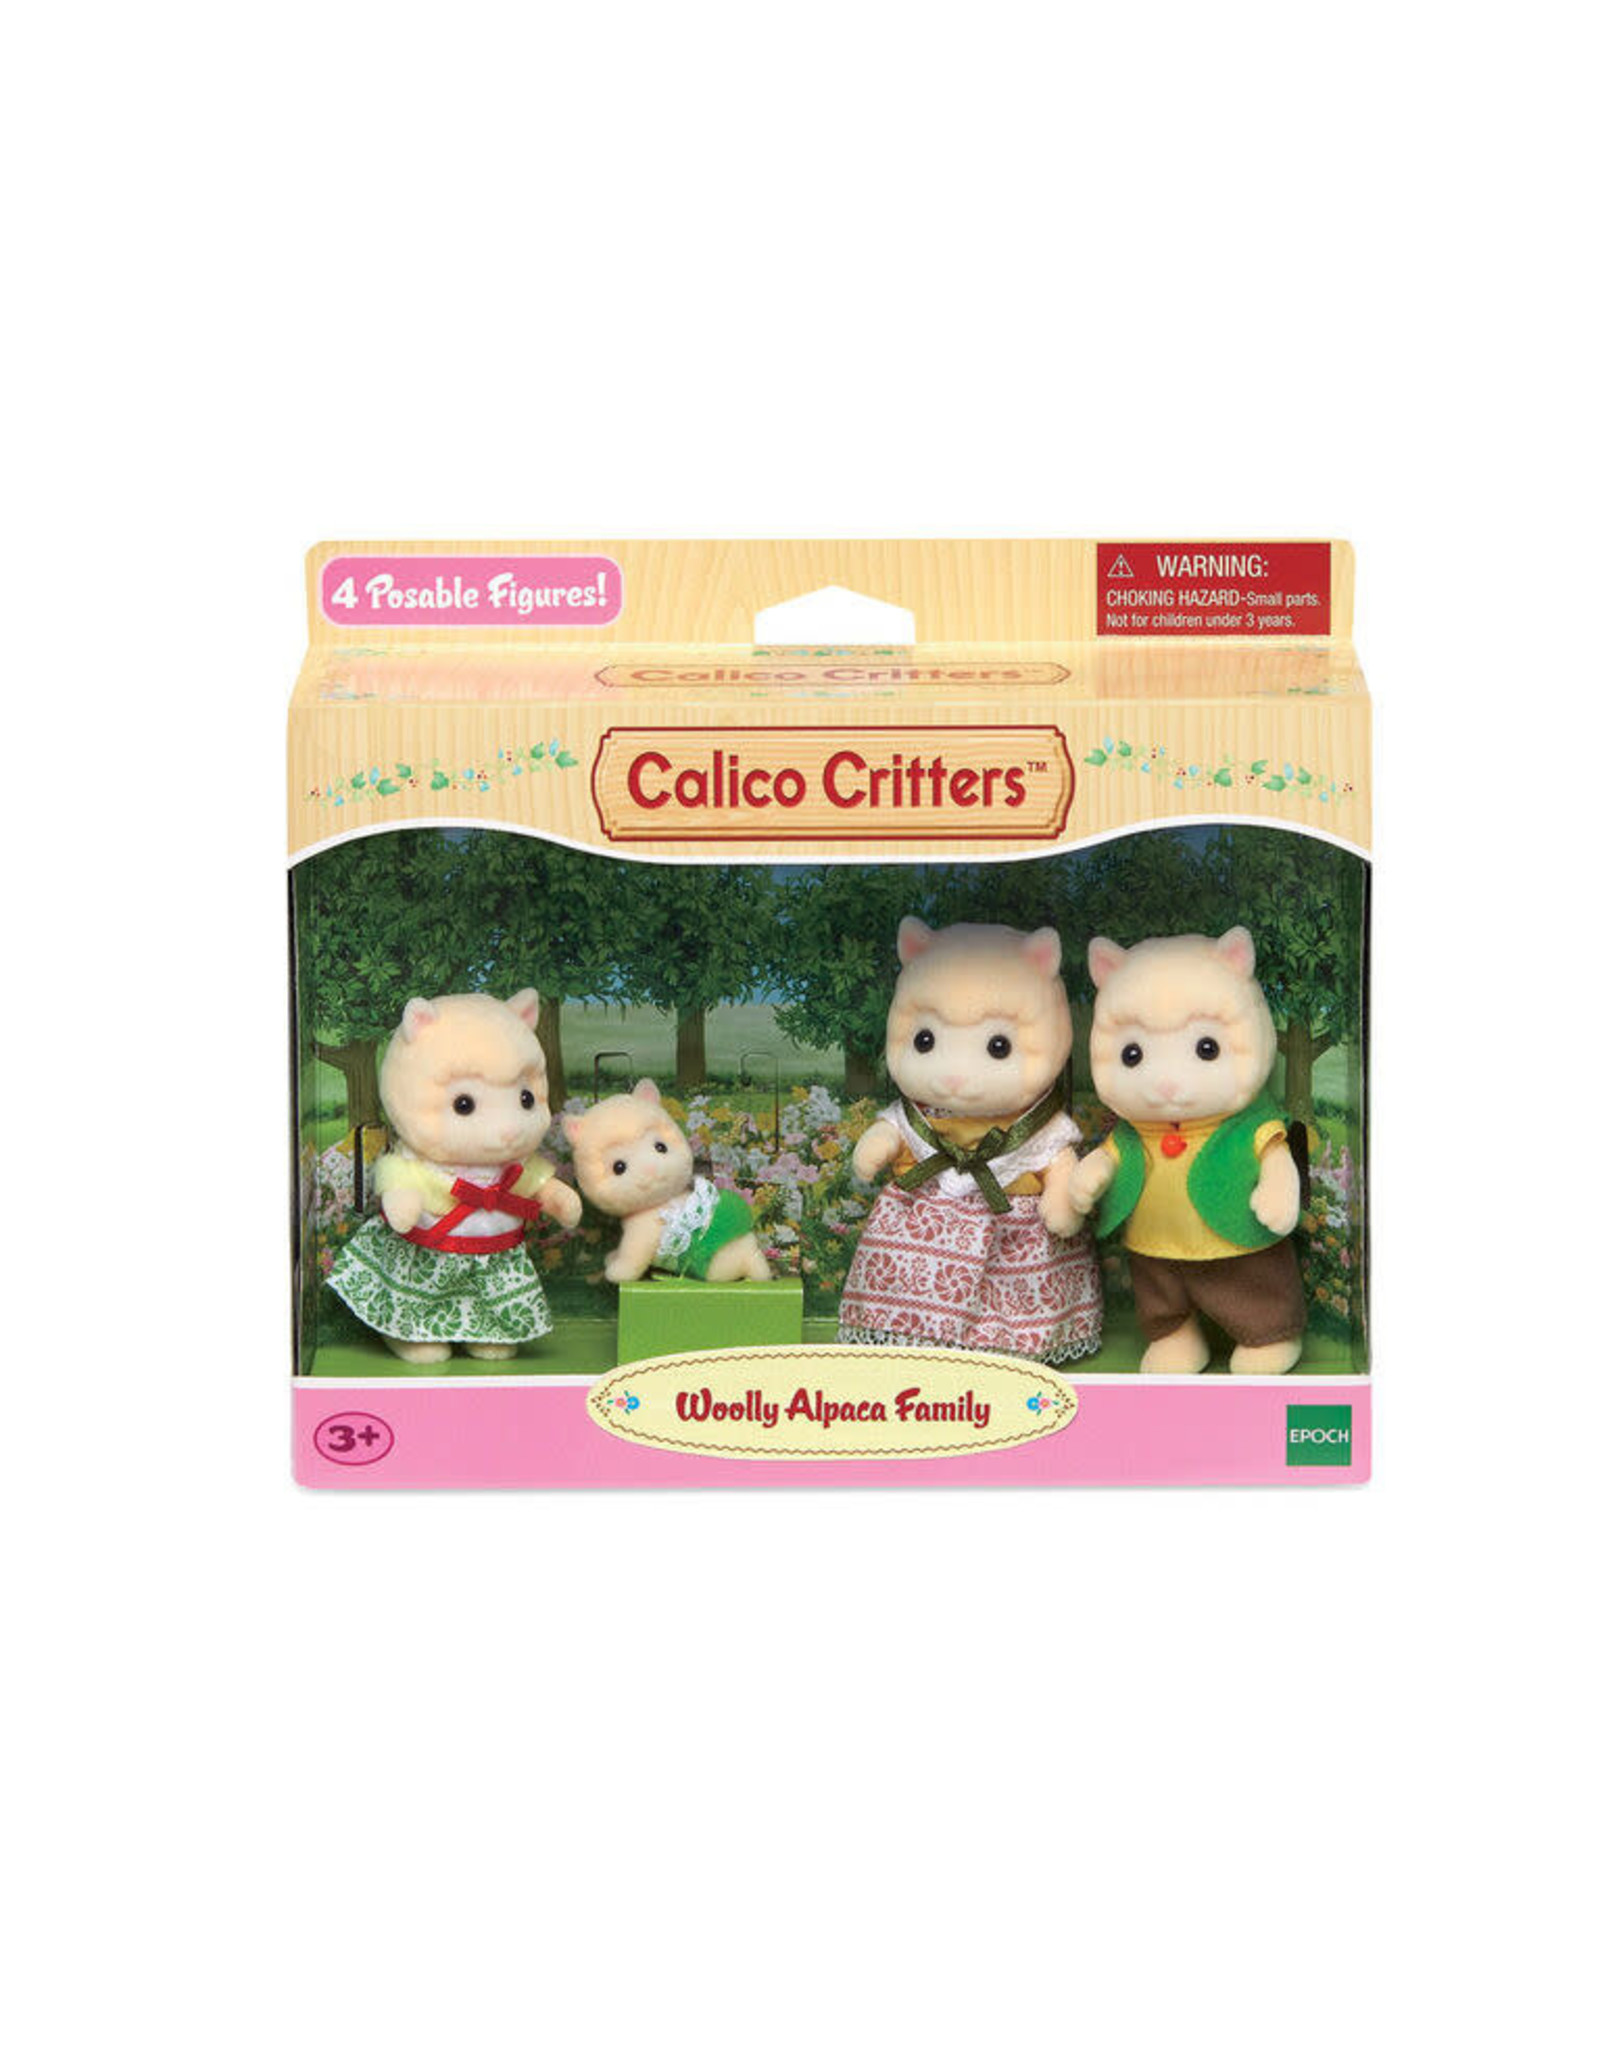 Calico Critters Calico Critters Woolly Alpaca Family